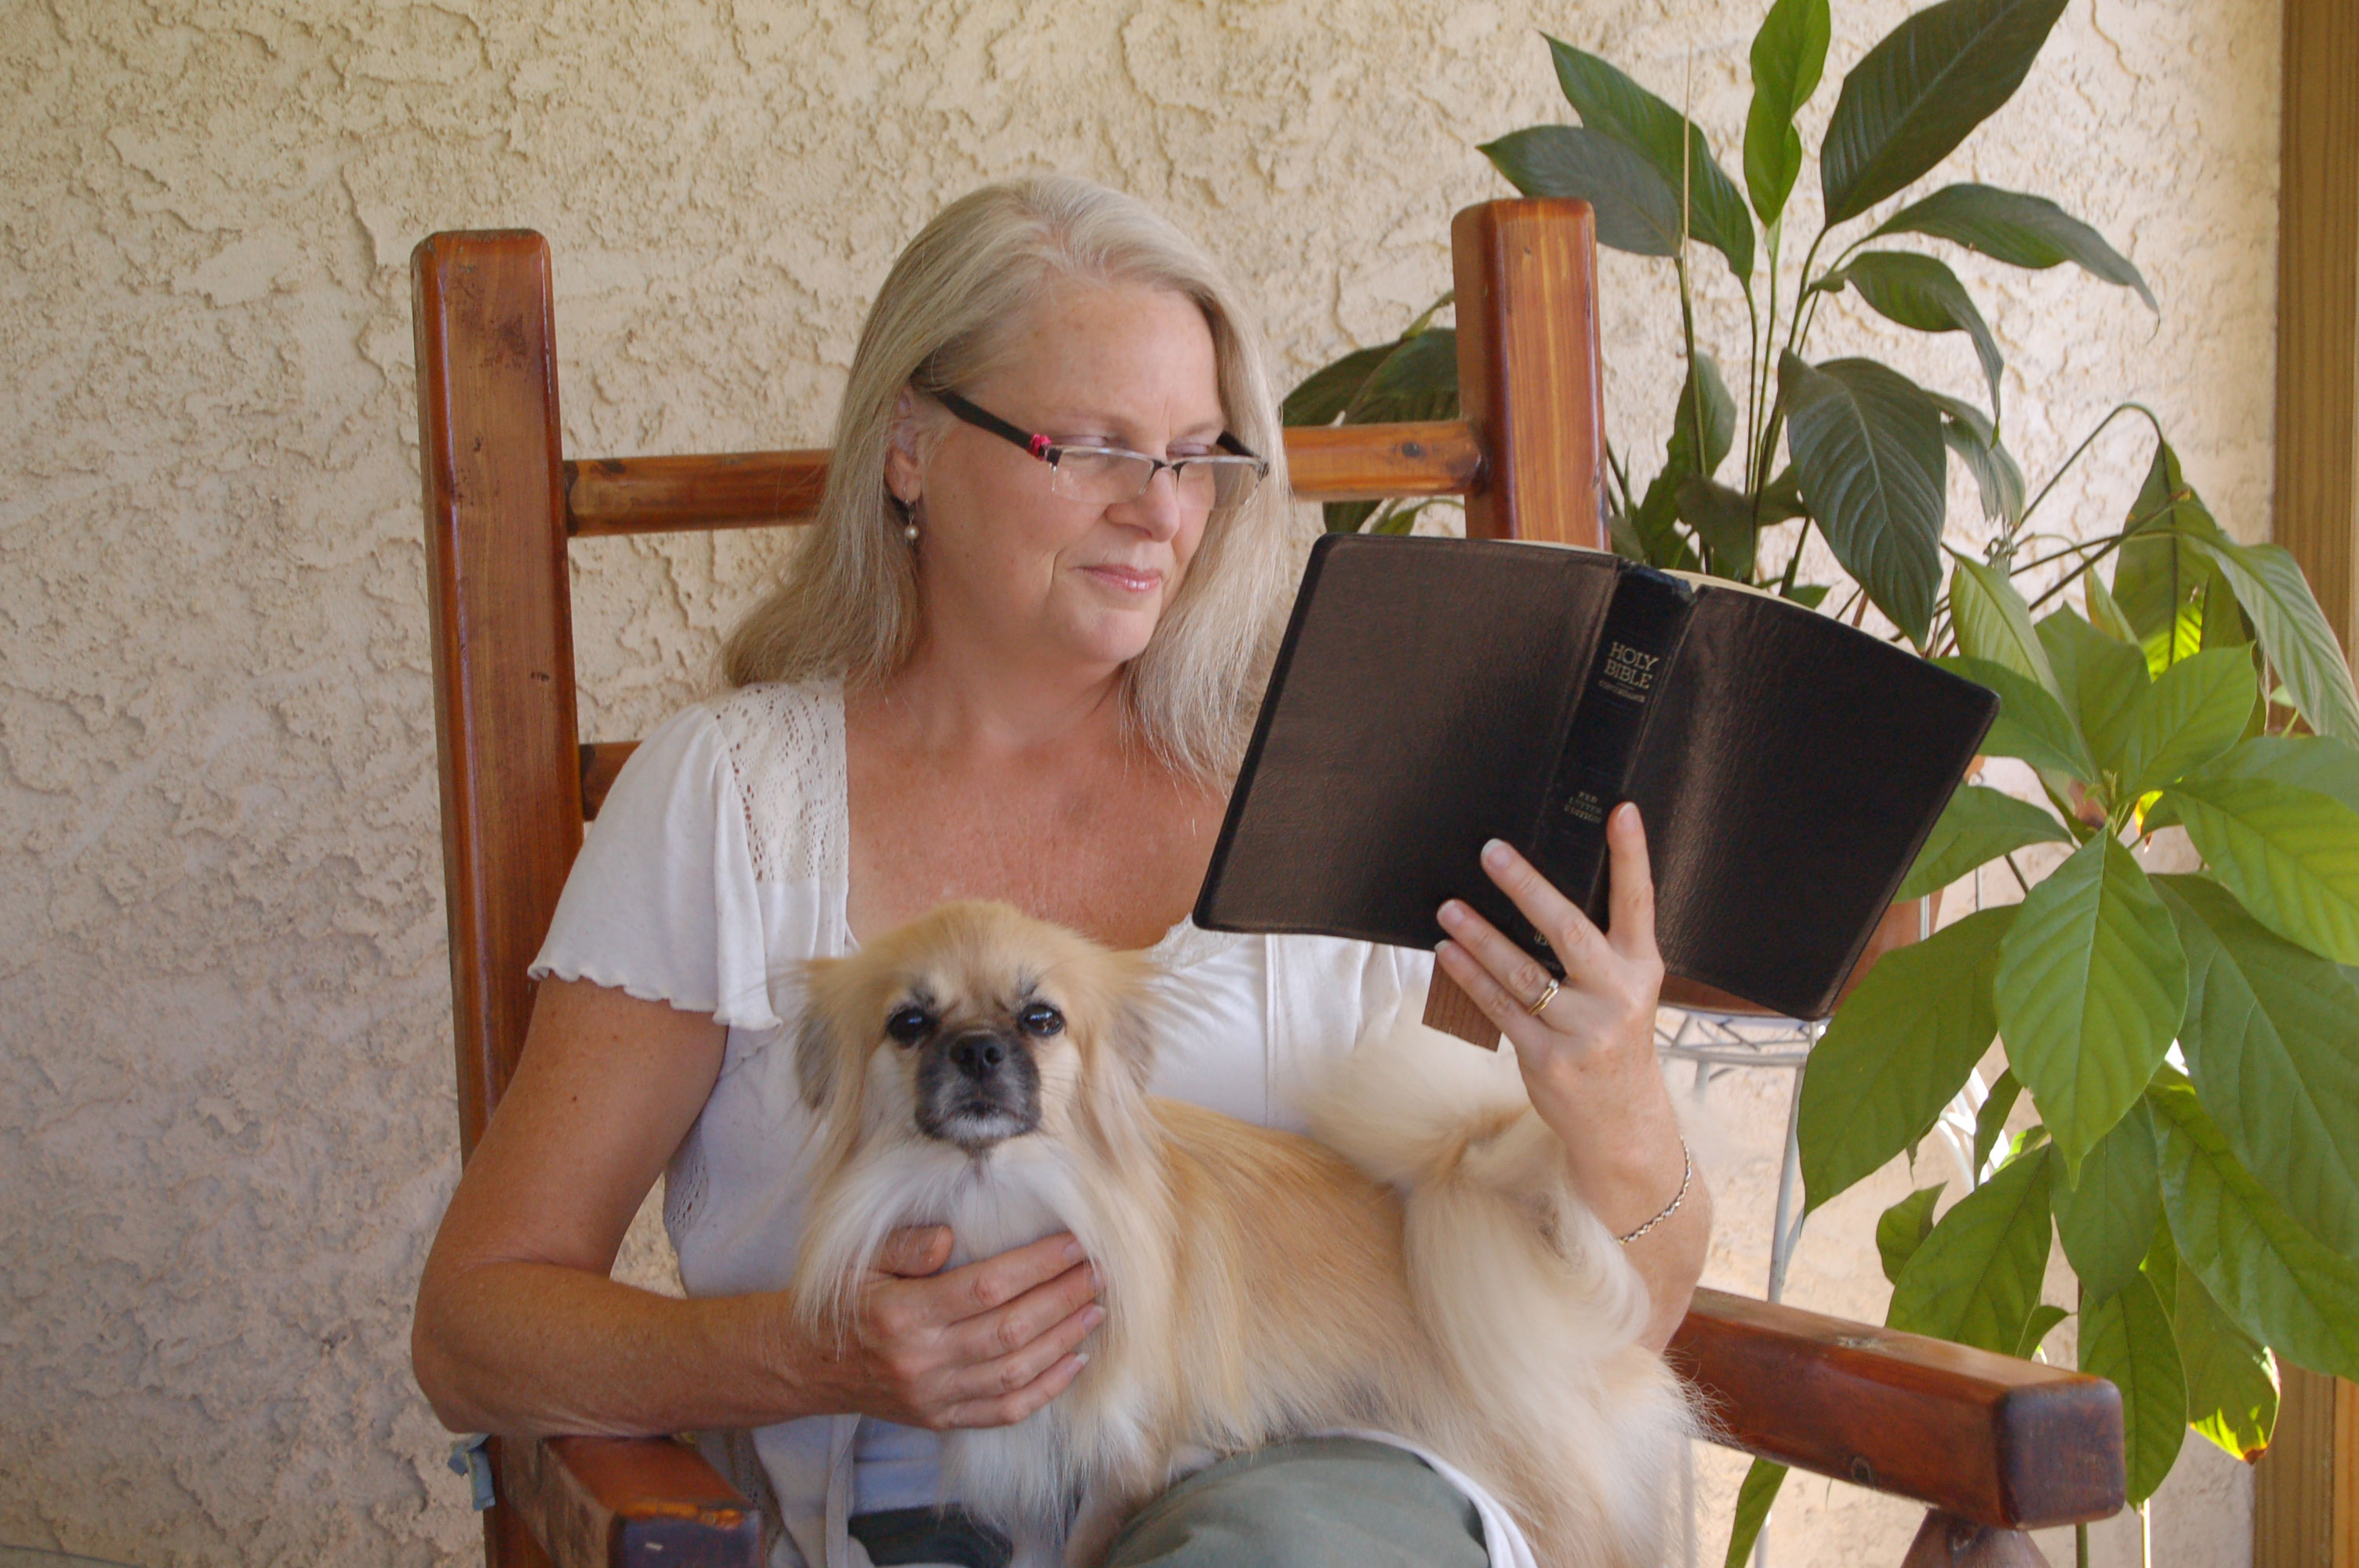 Christian Stock Photos by Linda Bateman - Woman Reading Bible while Sitting in Rocking Chair and Dog in Lap